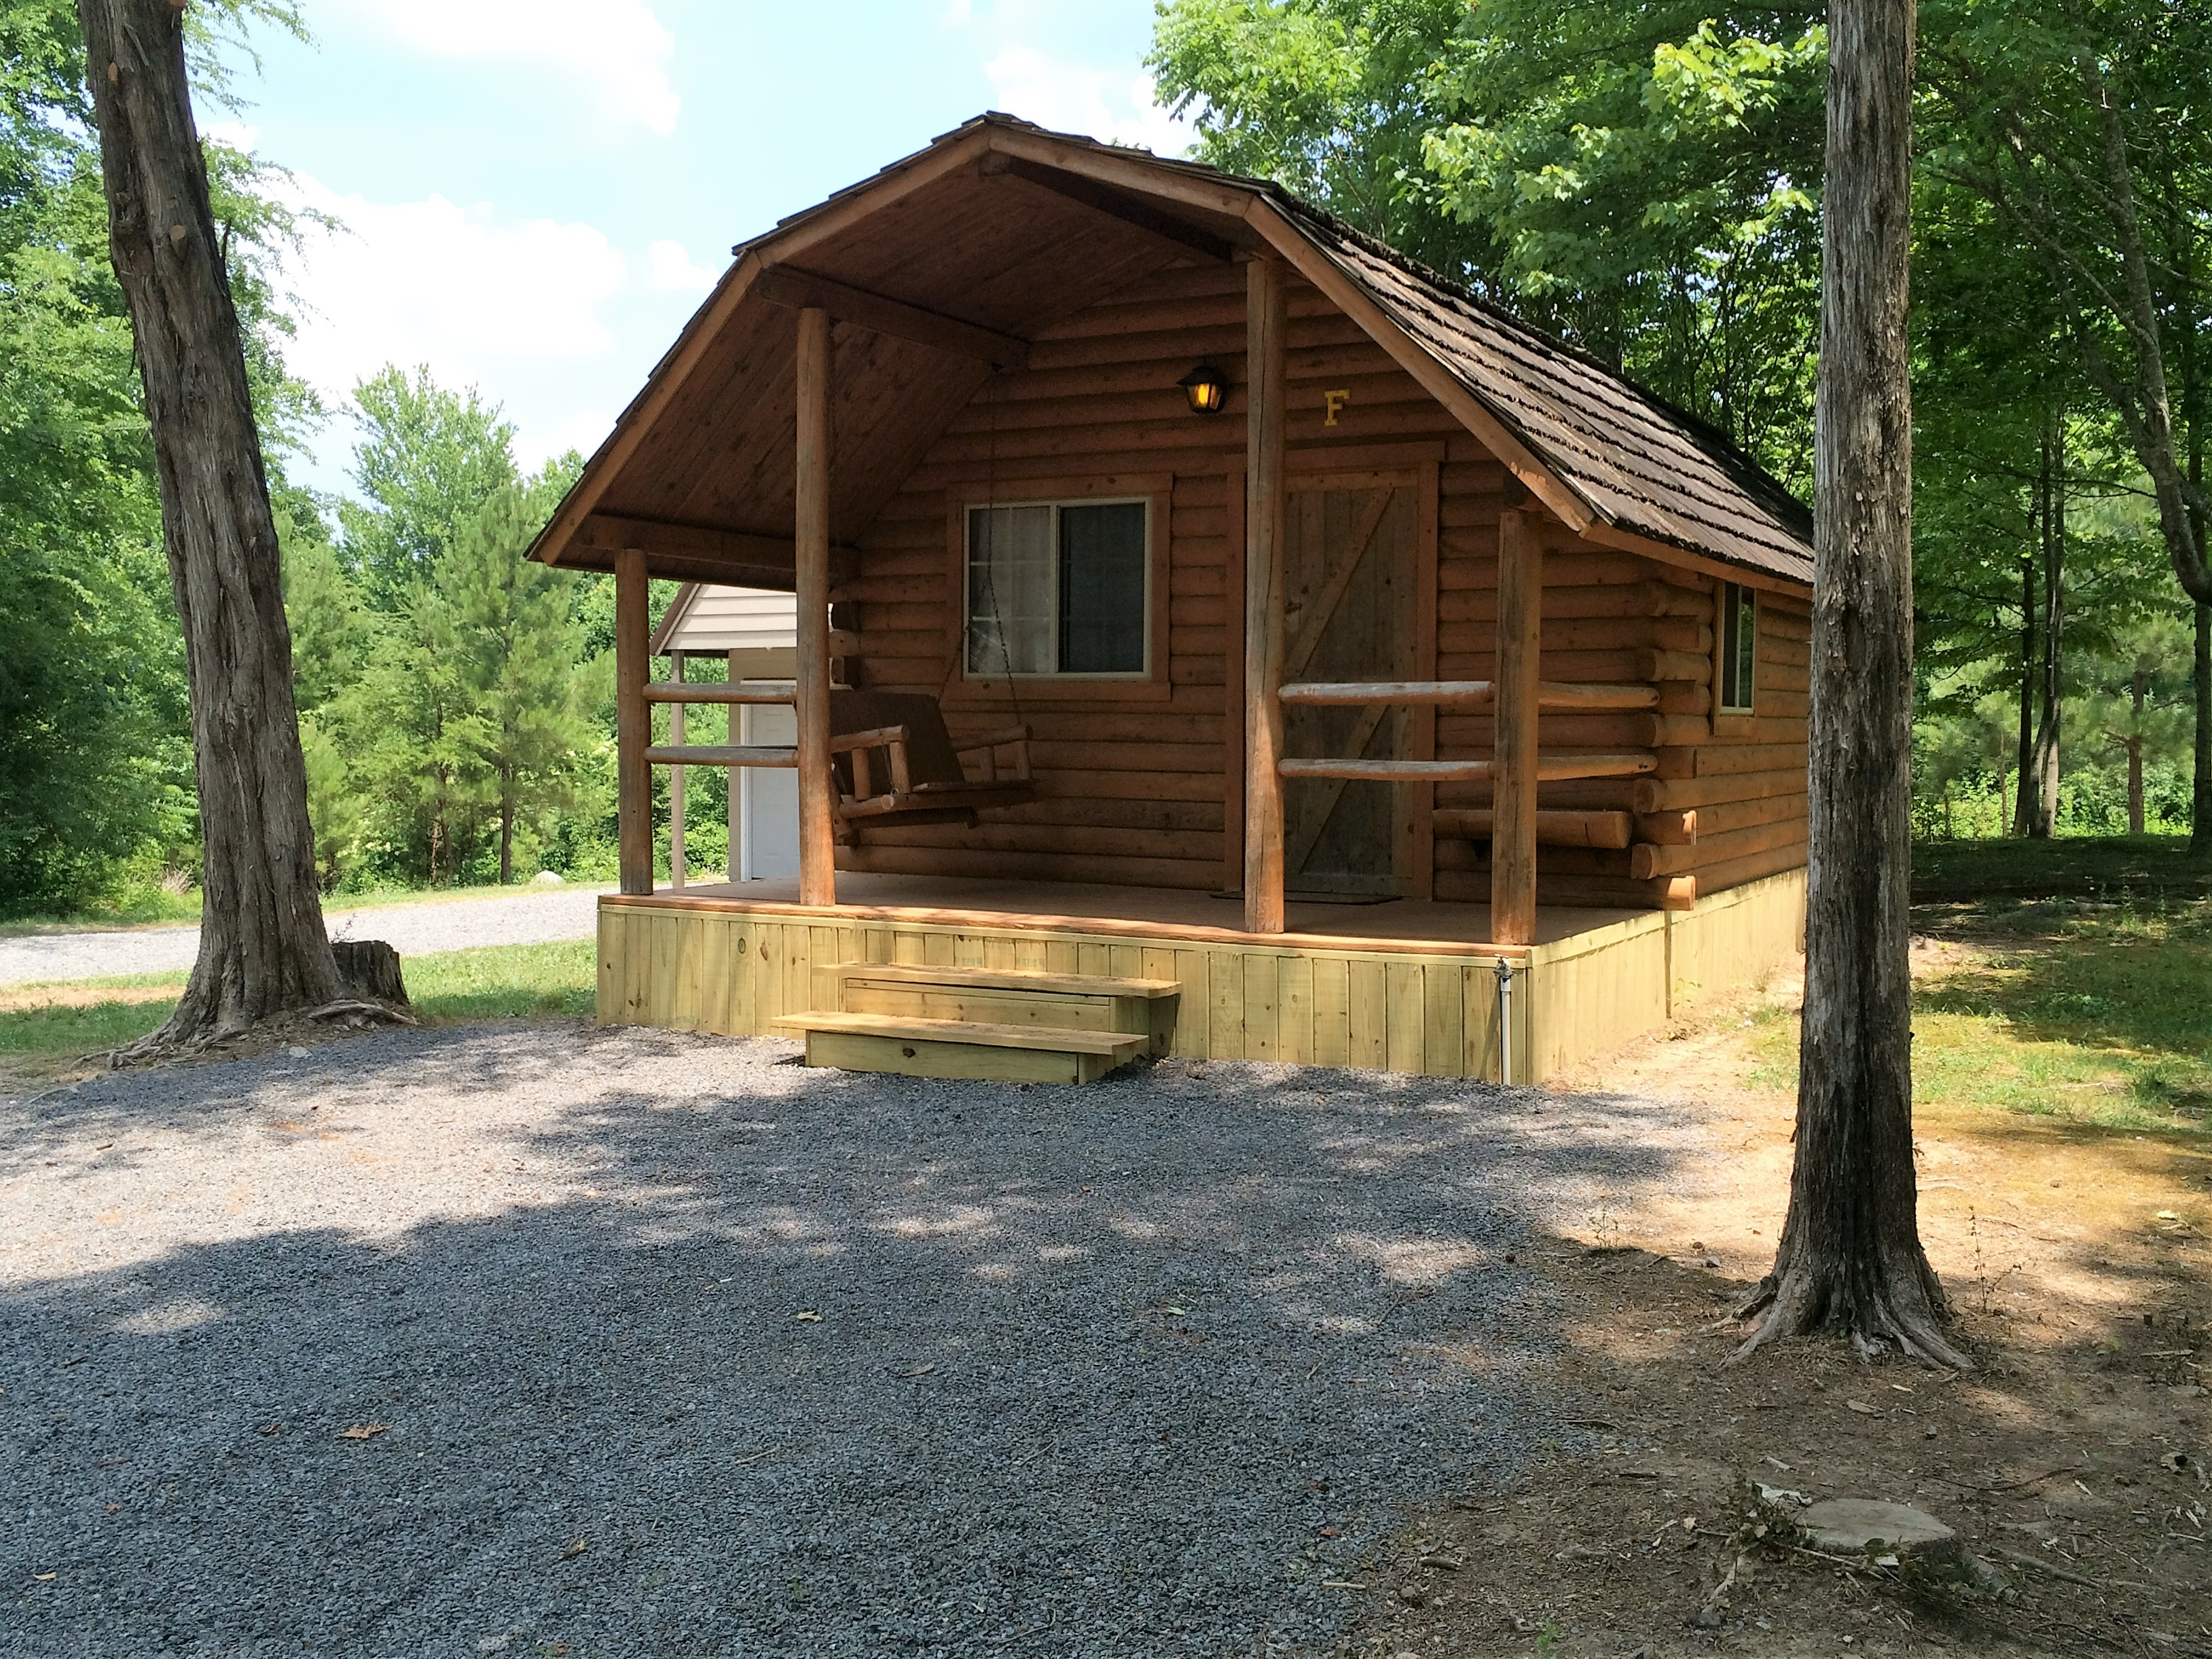 cabins near west chattanooga koa georgia reviews mountain campsite img lookout mountainchattanooga